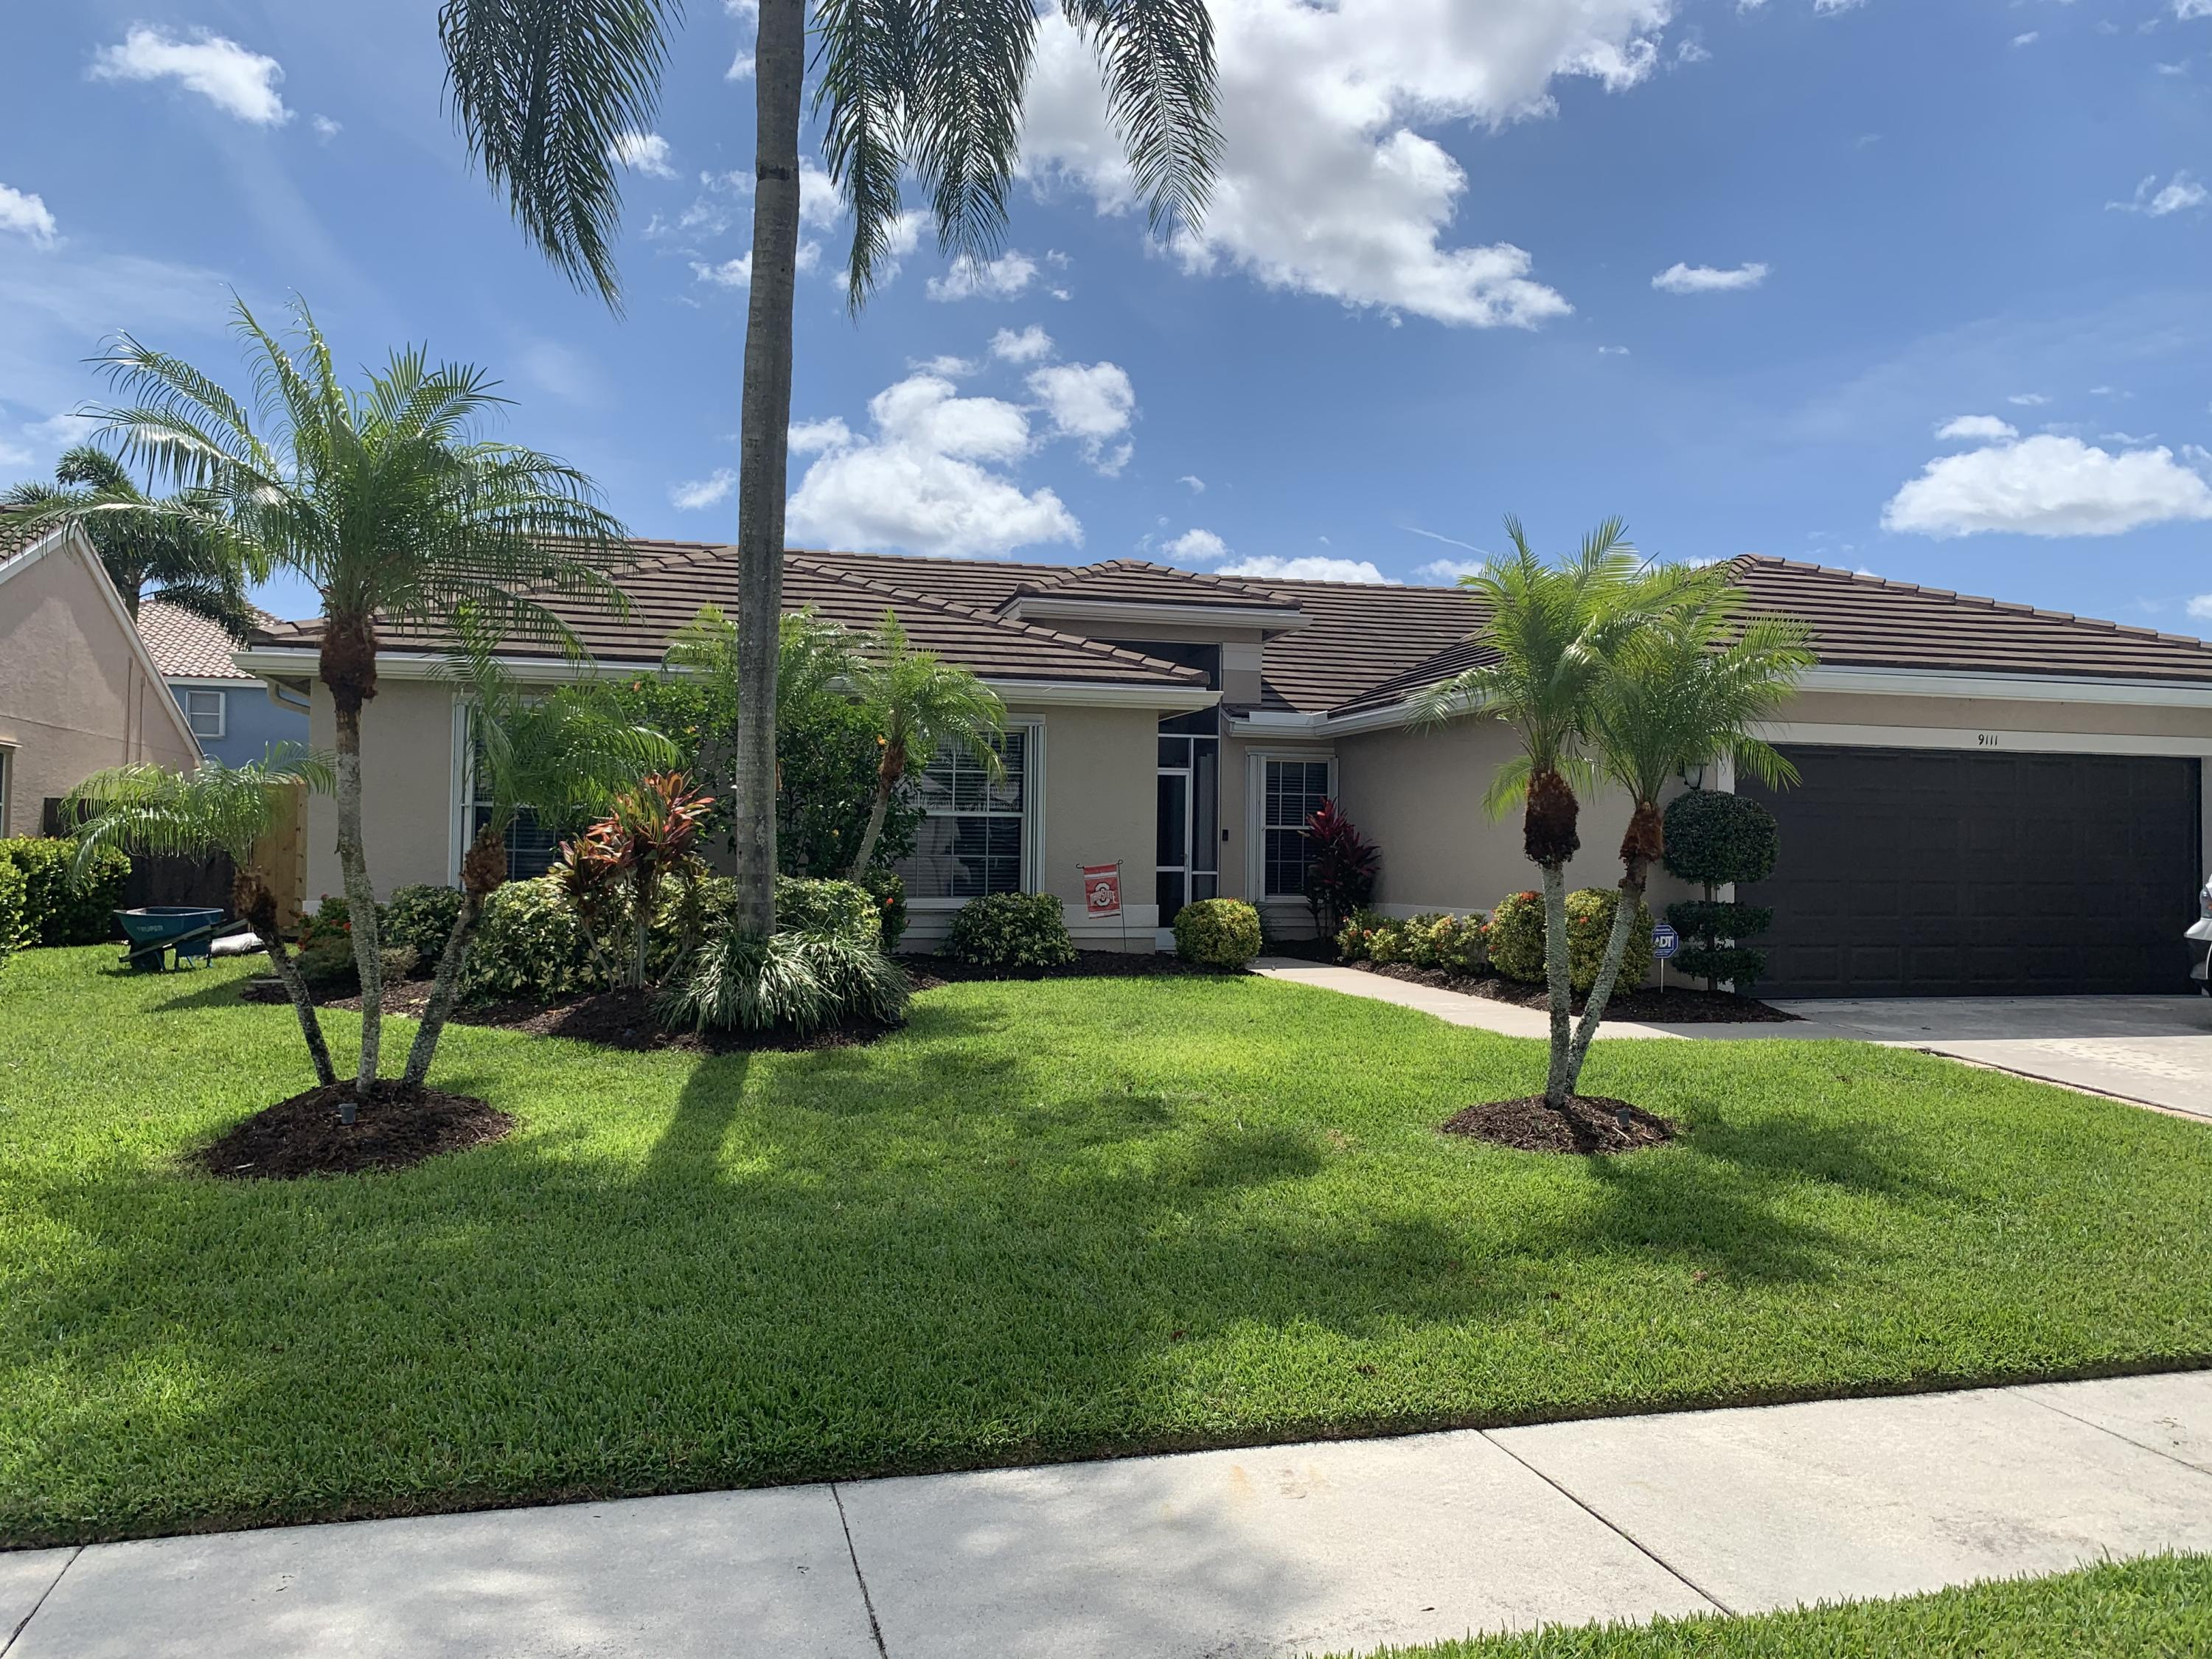 9111  Indian River Run  For Sale 10717301, FL